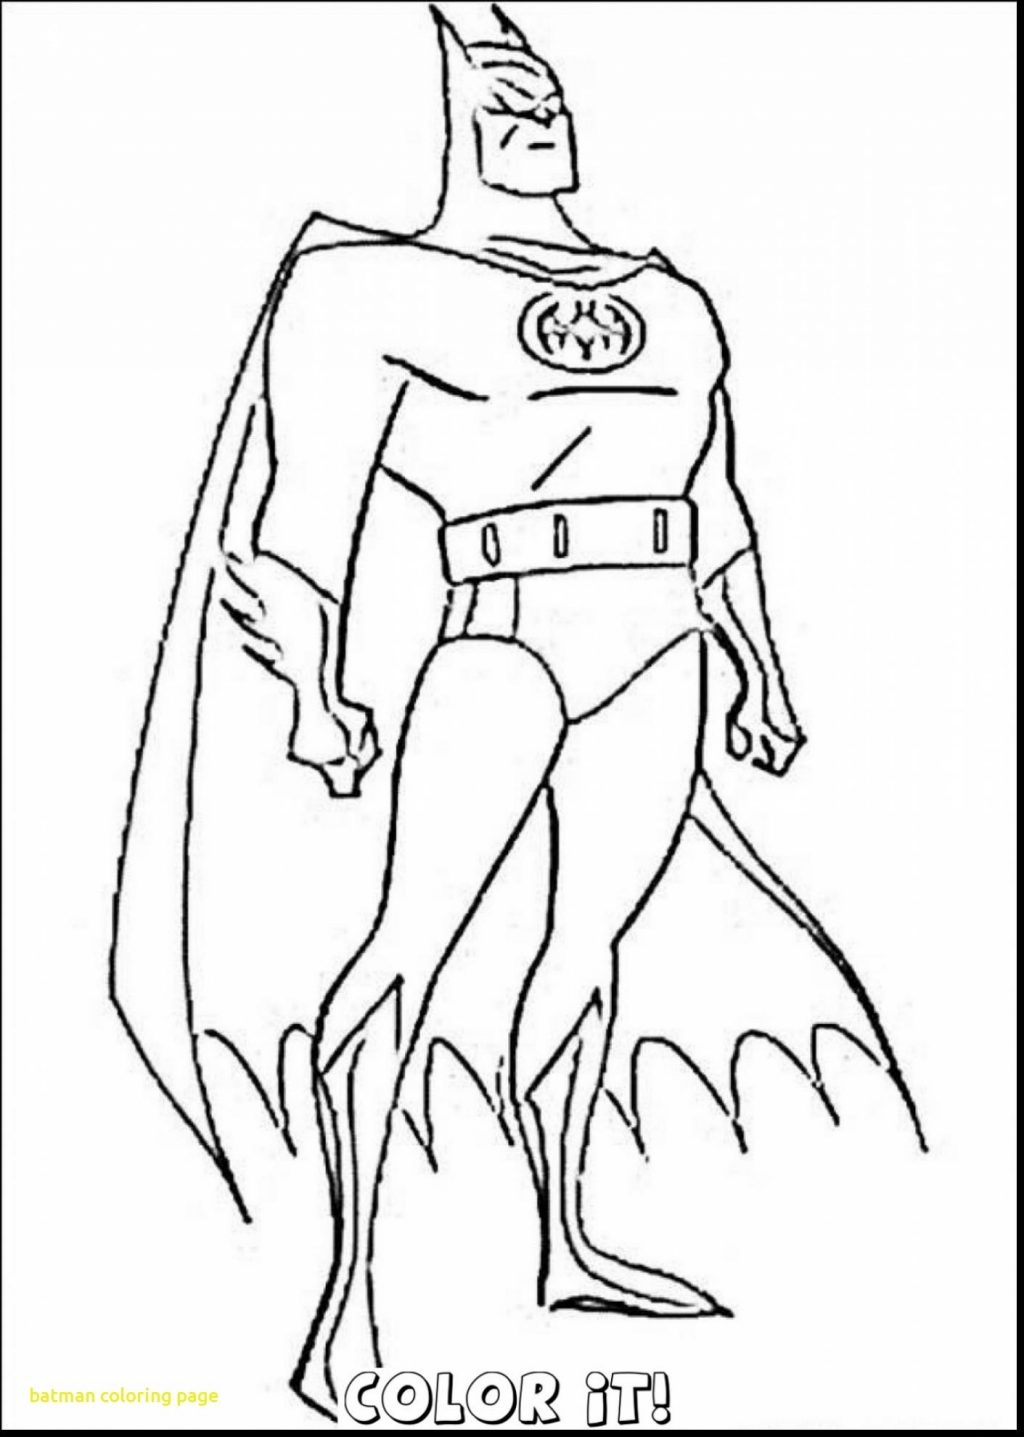 Pdf Coloring Pages For Kids Coloring Pages Fantastic Kids Coloring Pages Pdf Coloring Pagess